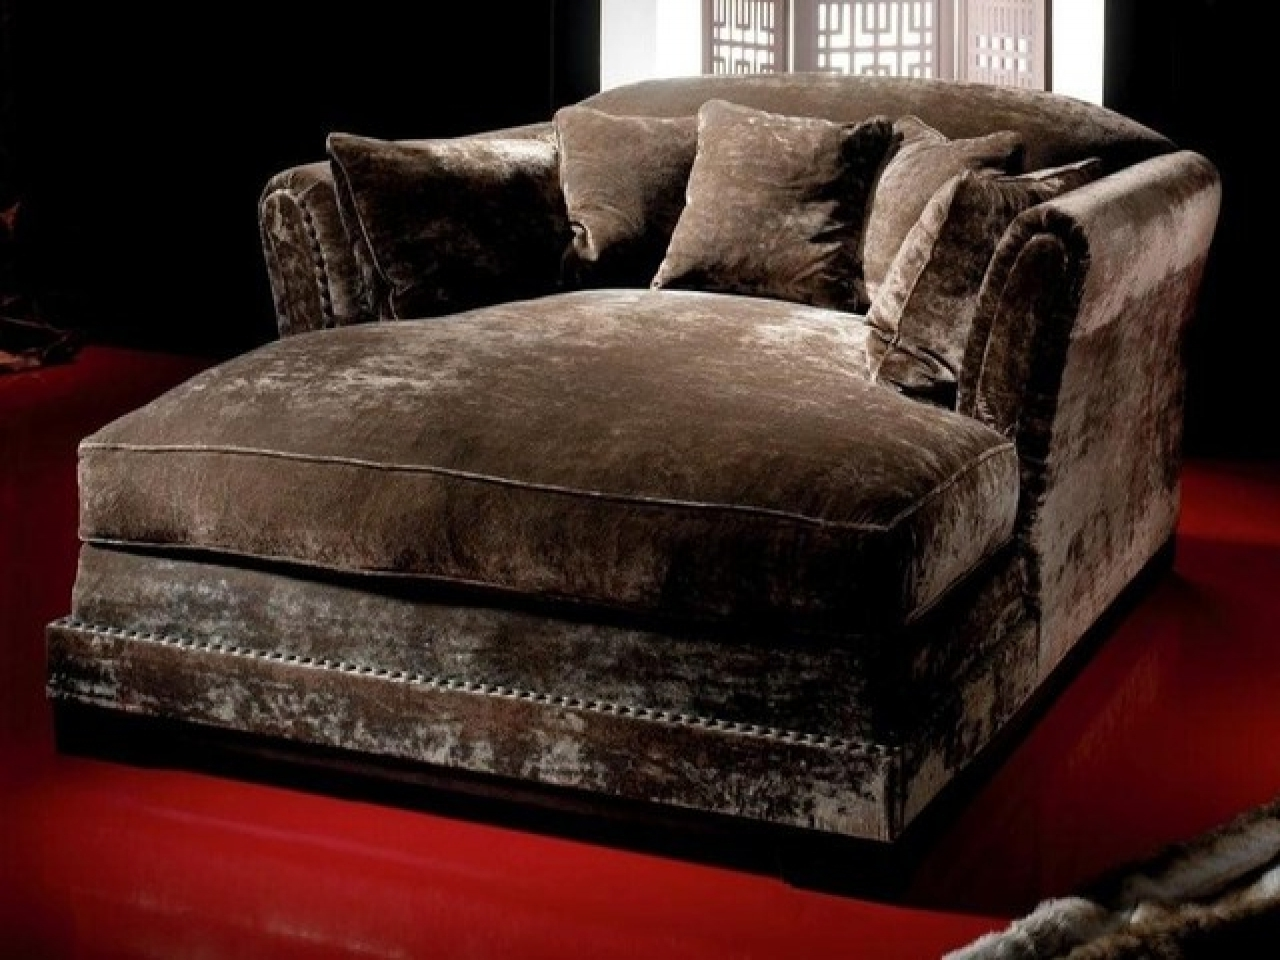 Comfy Leather Chairs, Tufted Oversized Large Chaise Lounge Chair Pertaining To Widely Used Large Chaise Lounges (View 2 of 15)